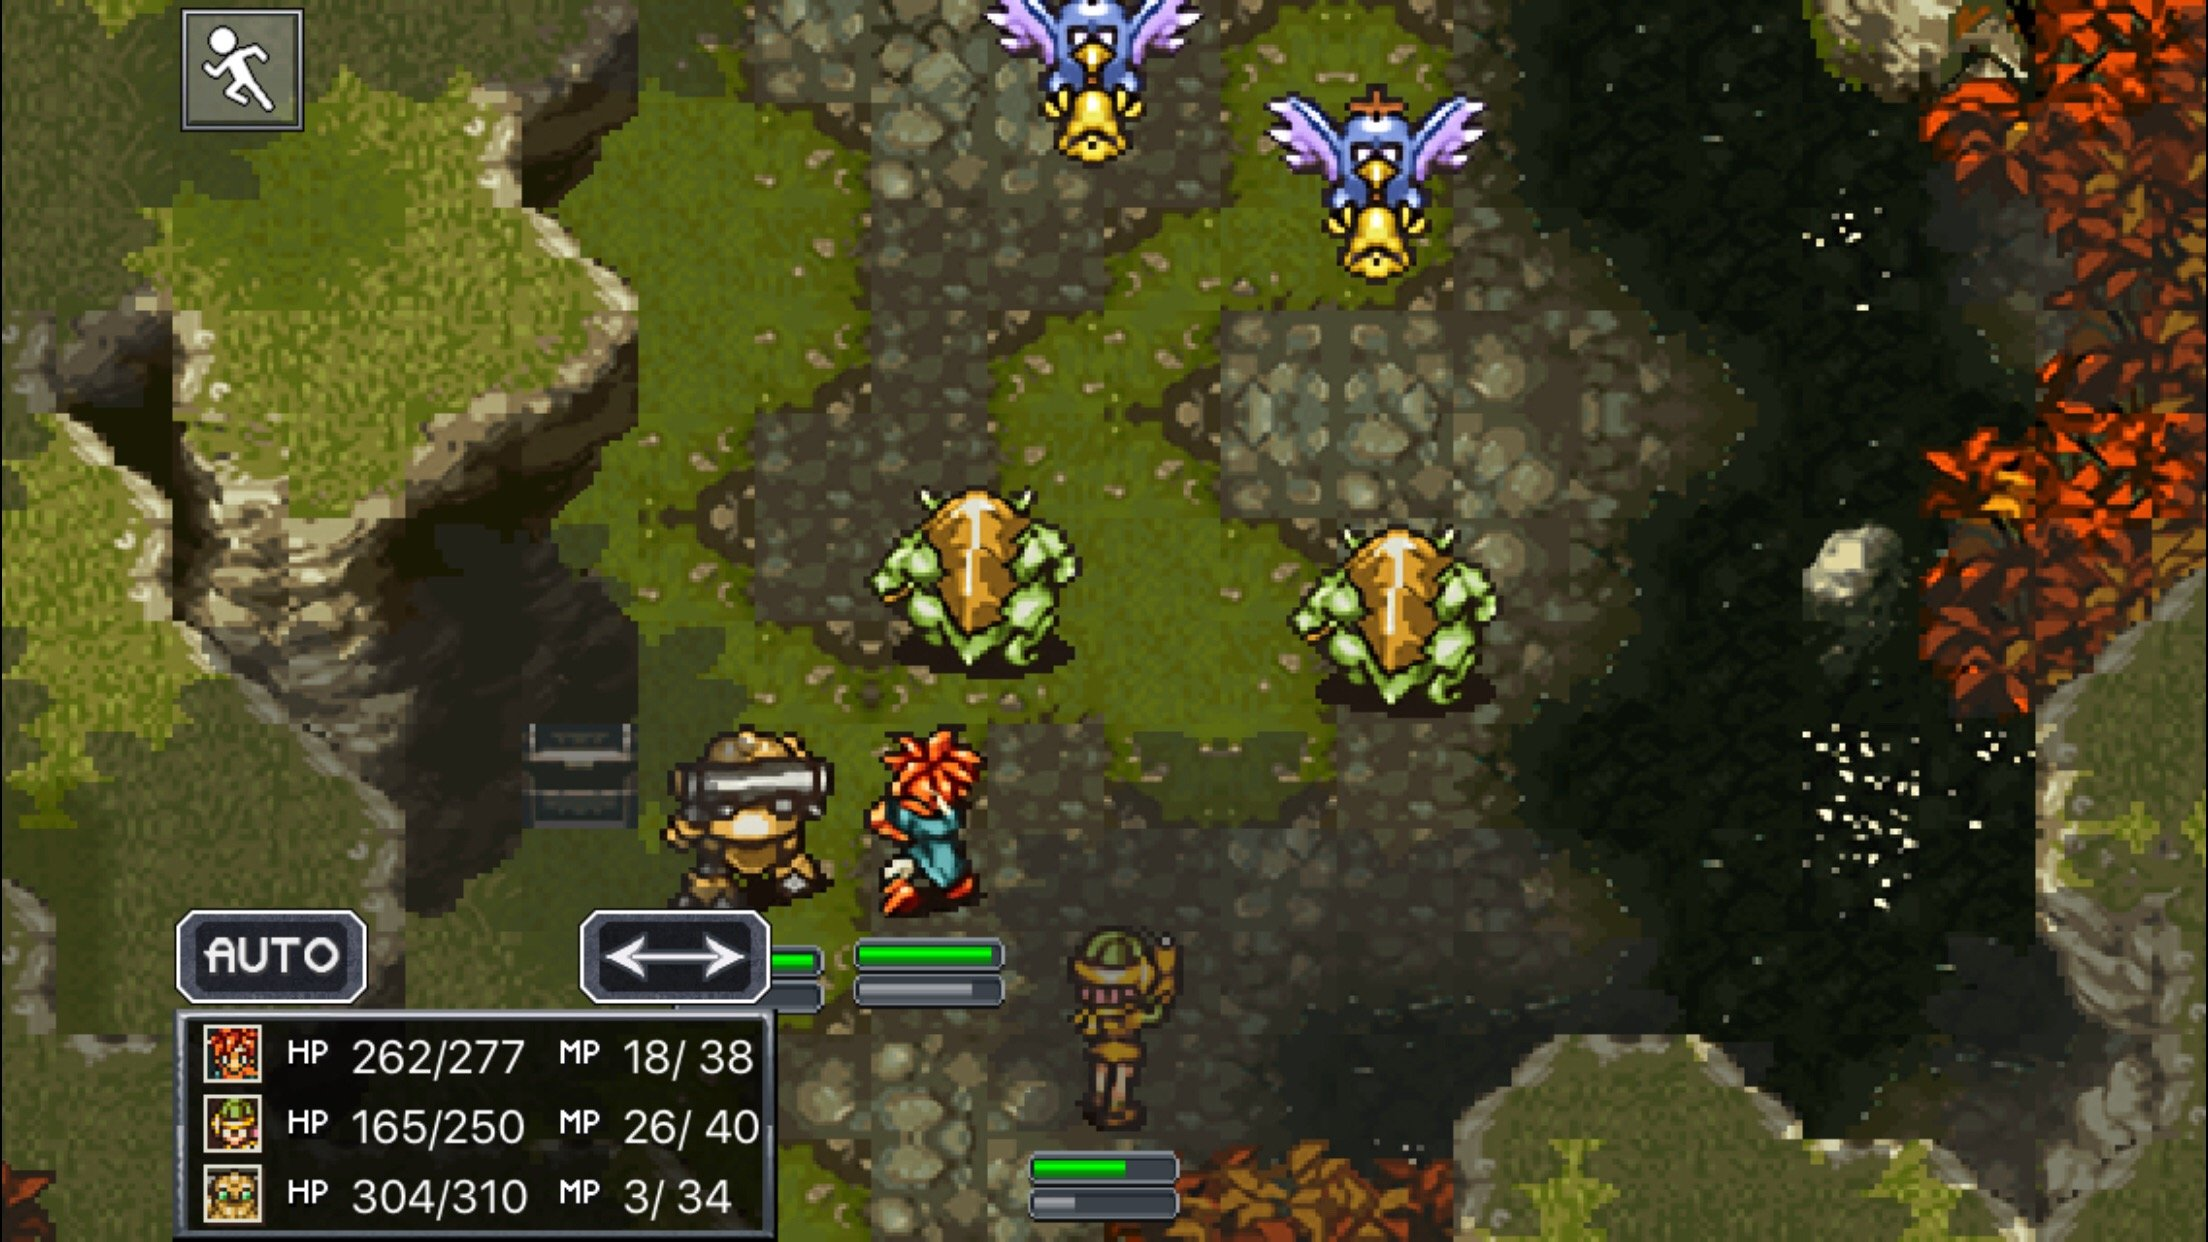 The New 'Chrono Trigger' Isn't a Mobile Port, Everyone